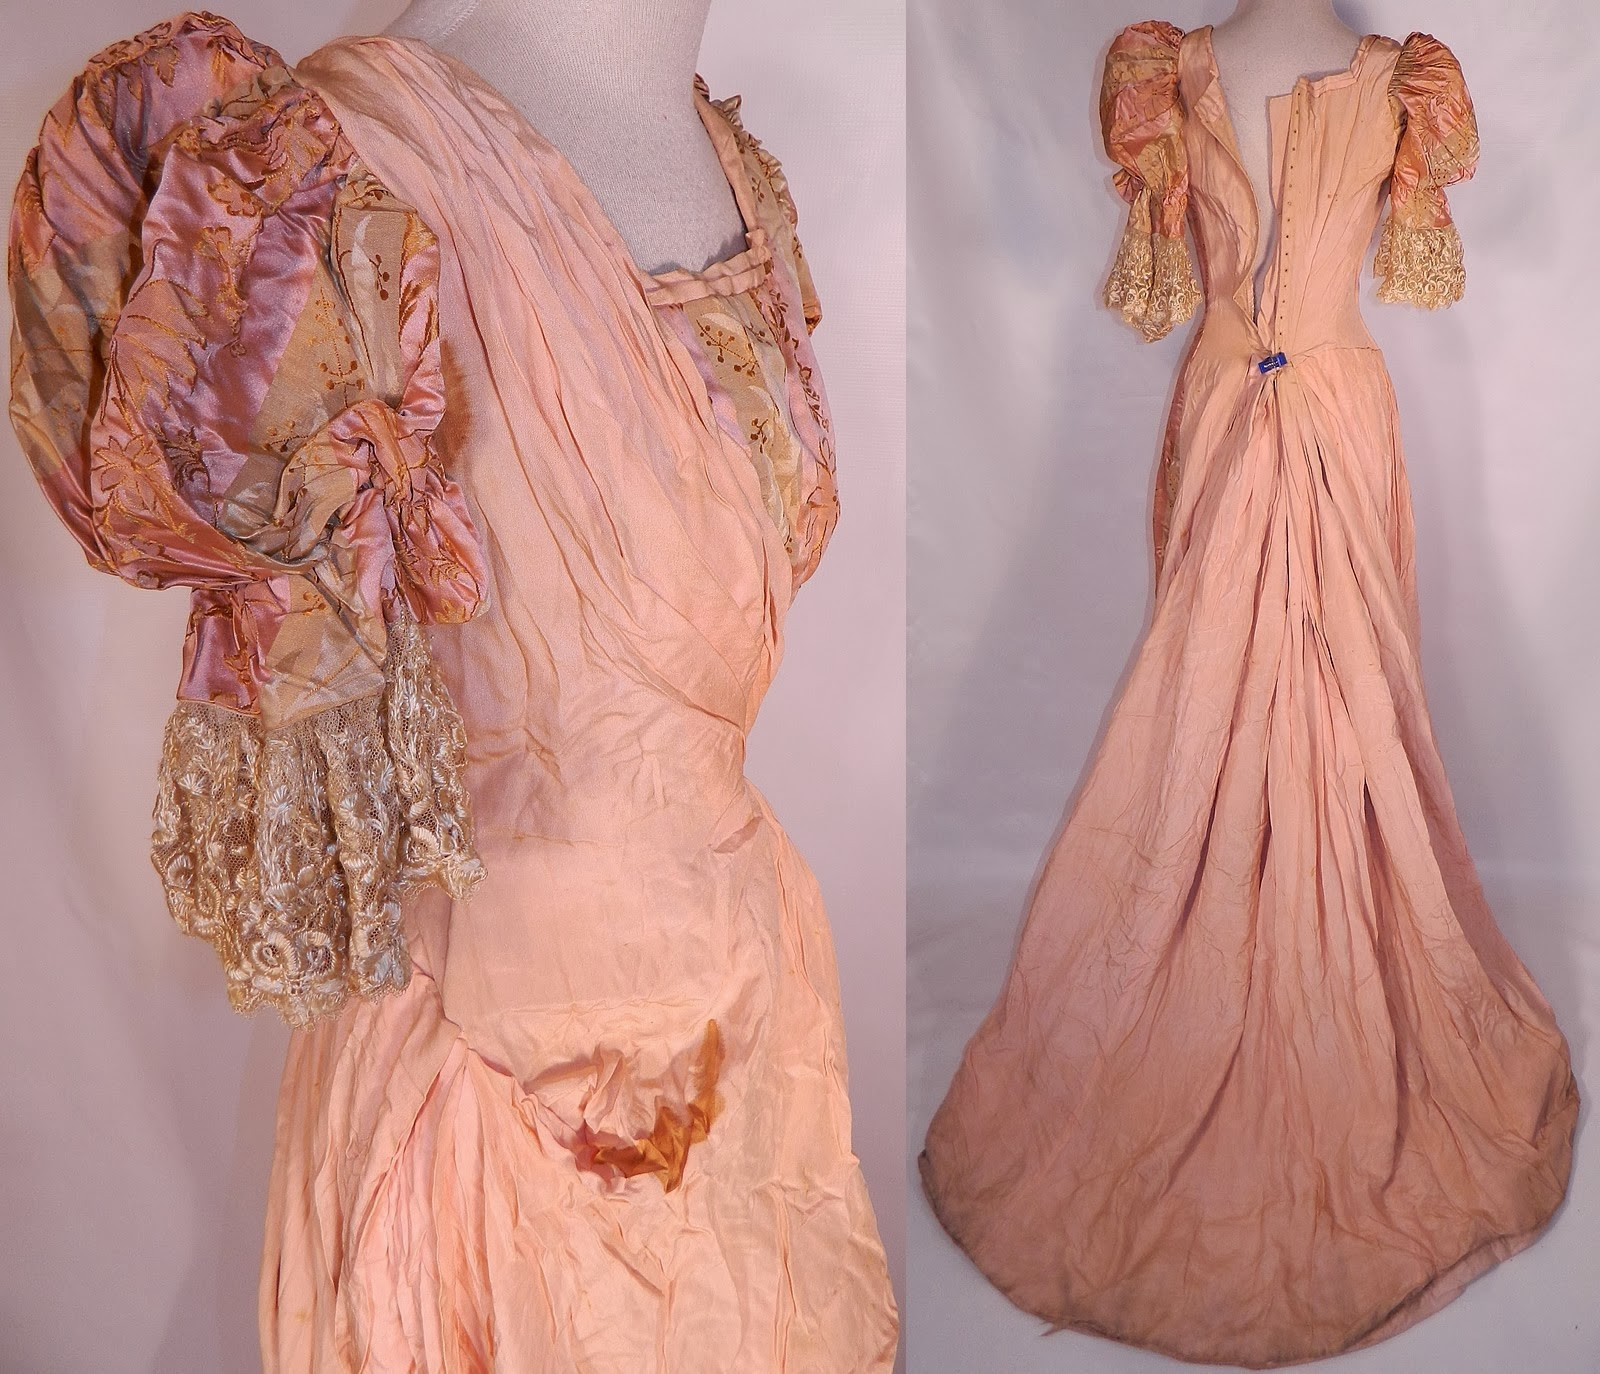 All The Pretty Dresses: Edwardian Pink Ball Gown